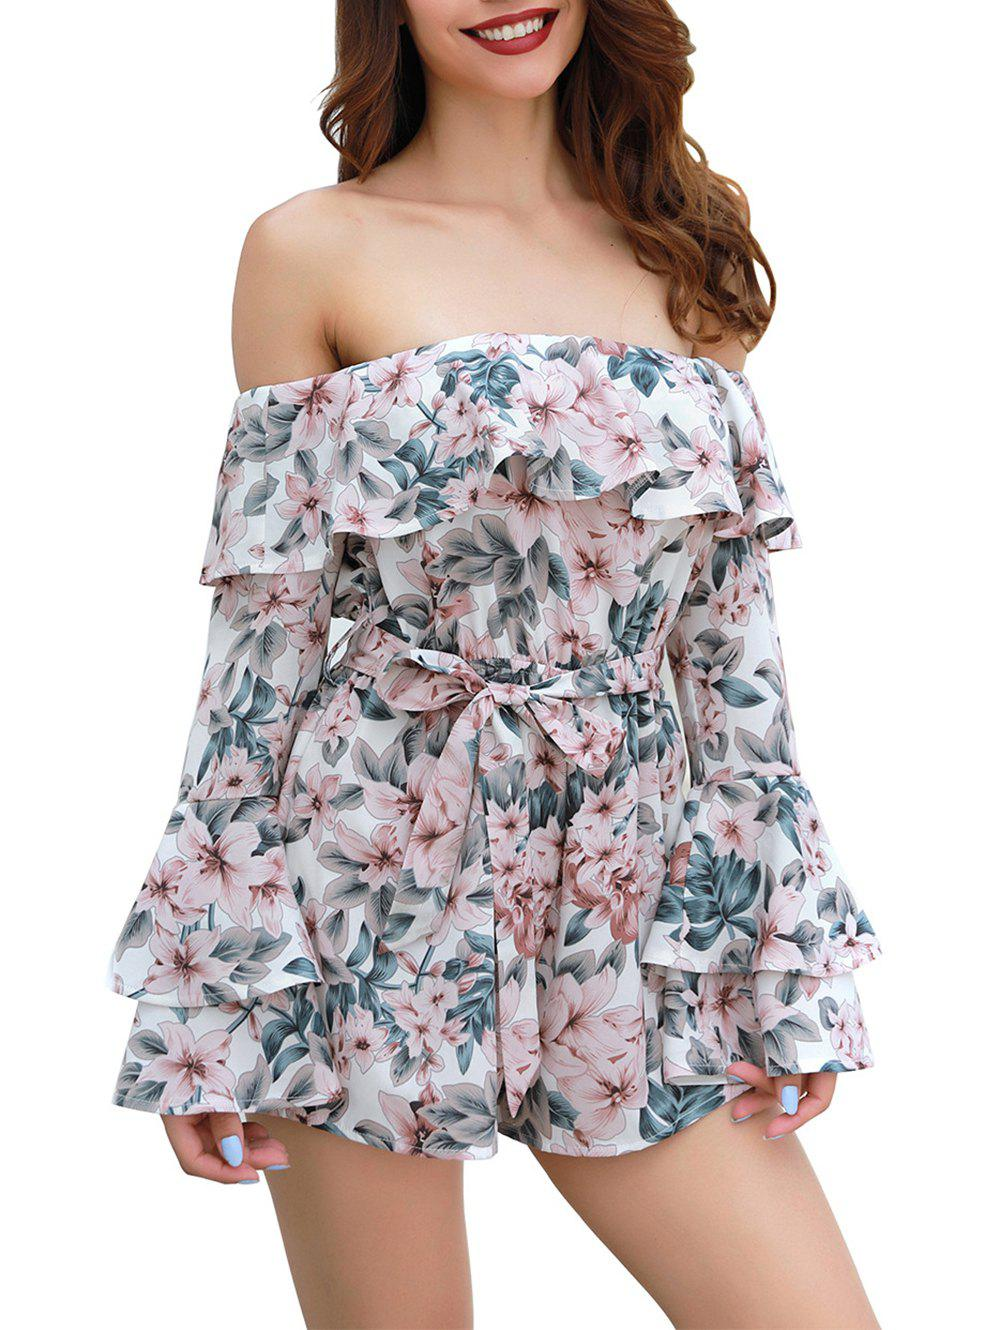 Fashion Womens  Floral Off Shoulder 3/4 Sleeves Romper Jumpsuit